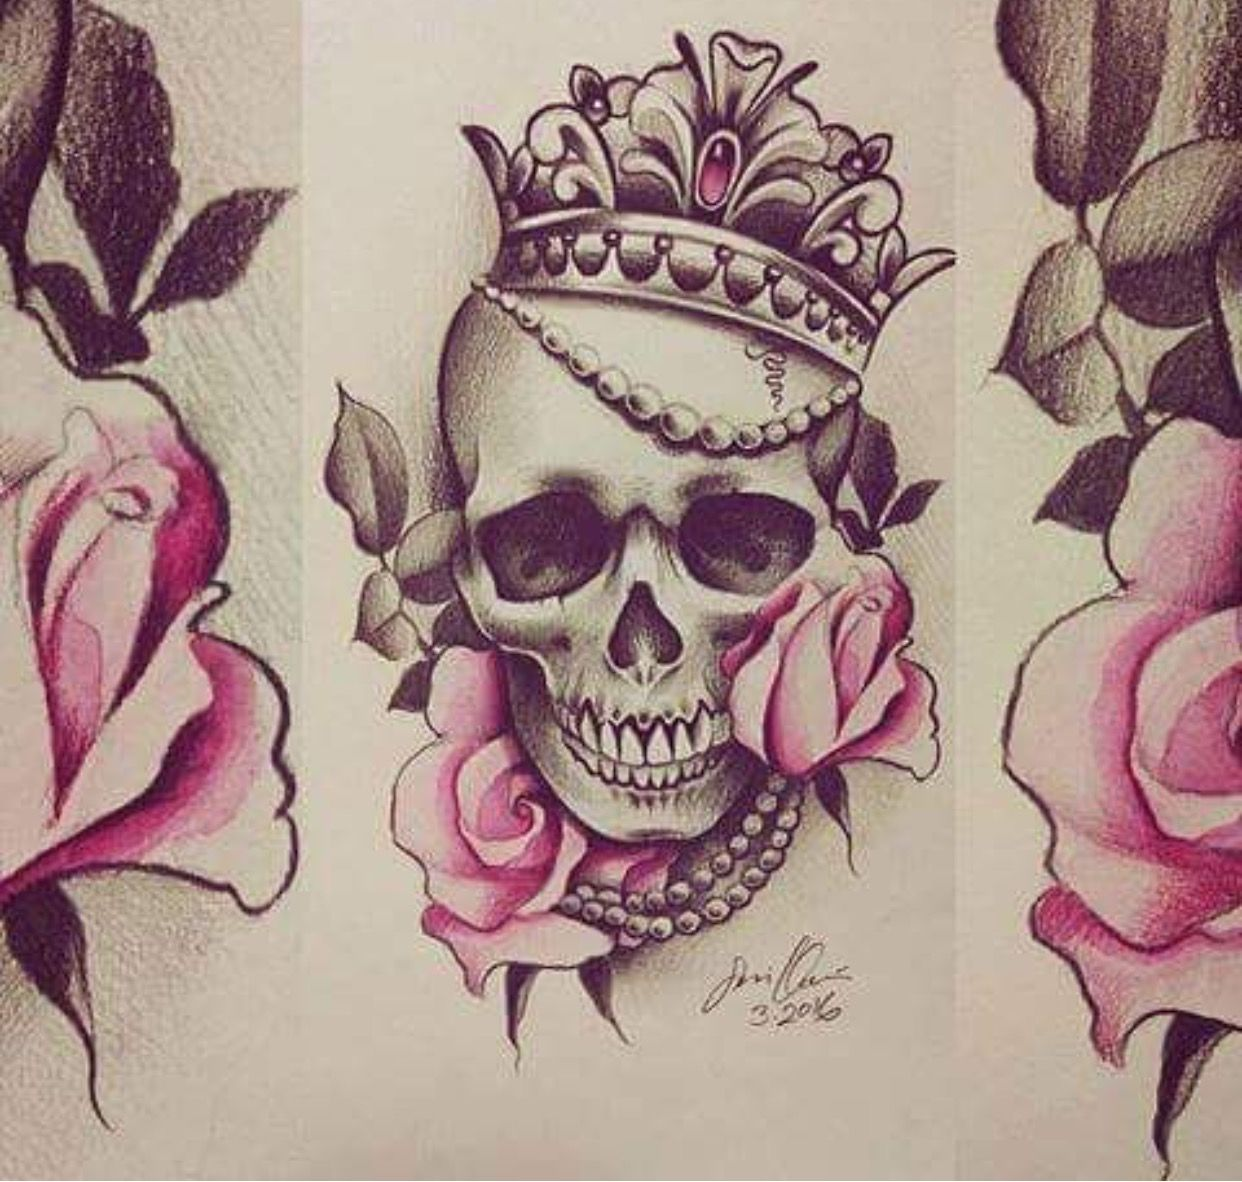 Tats pinterest gun tattoos skulls and tattoos and body art - Tattoo Art I Love The Skull And Crown Part Only